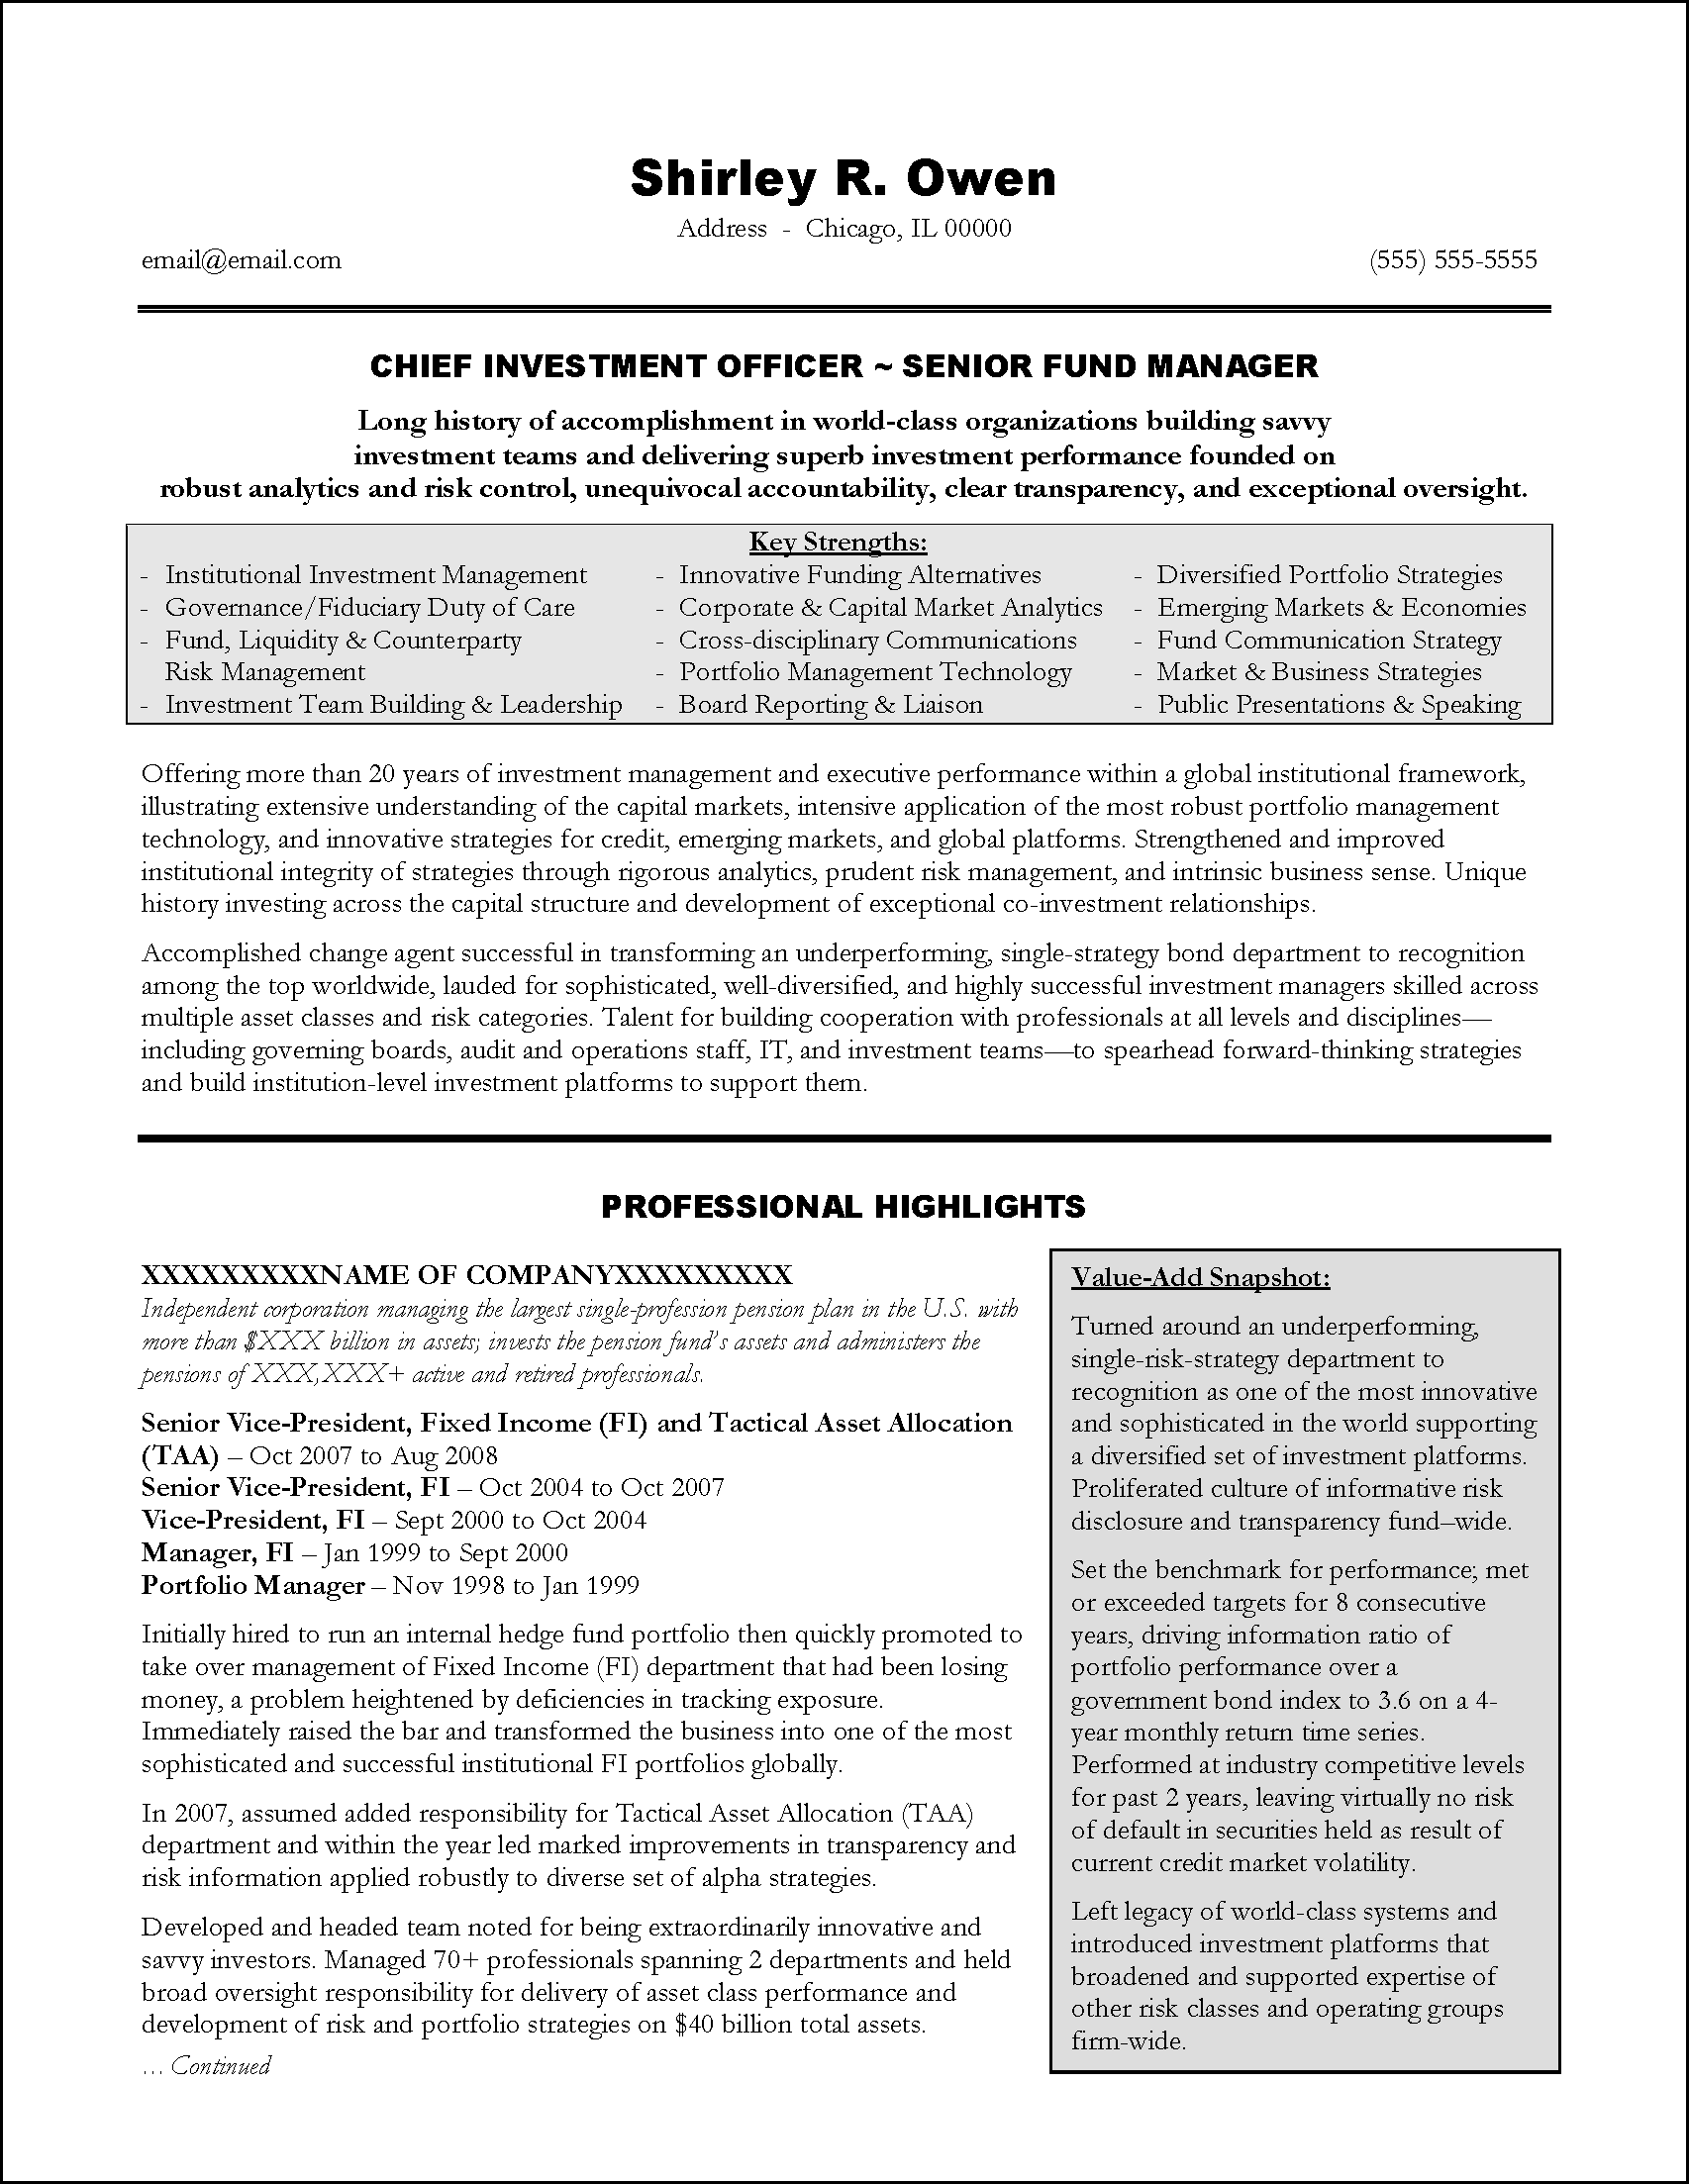 Functional Executive Template Banking Lending Resume Vip Gray Page Png Professional  Summary Tem Full  Examples Of Professional Summaries